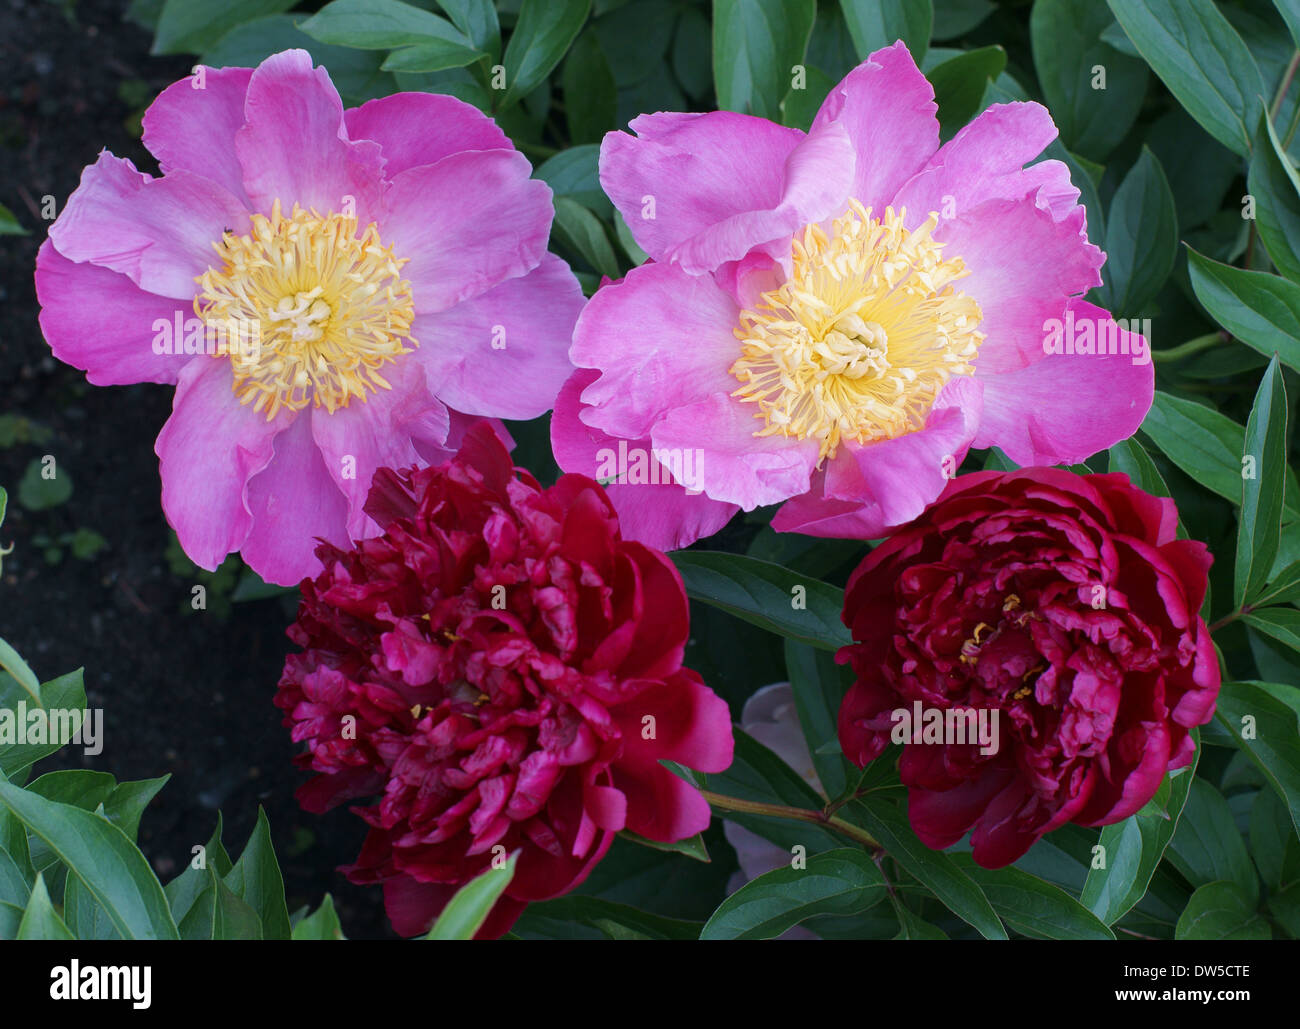 Pink and scarlet peonies Peonia - Stock Image